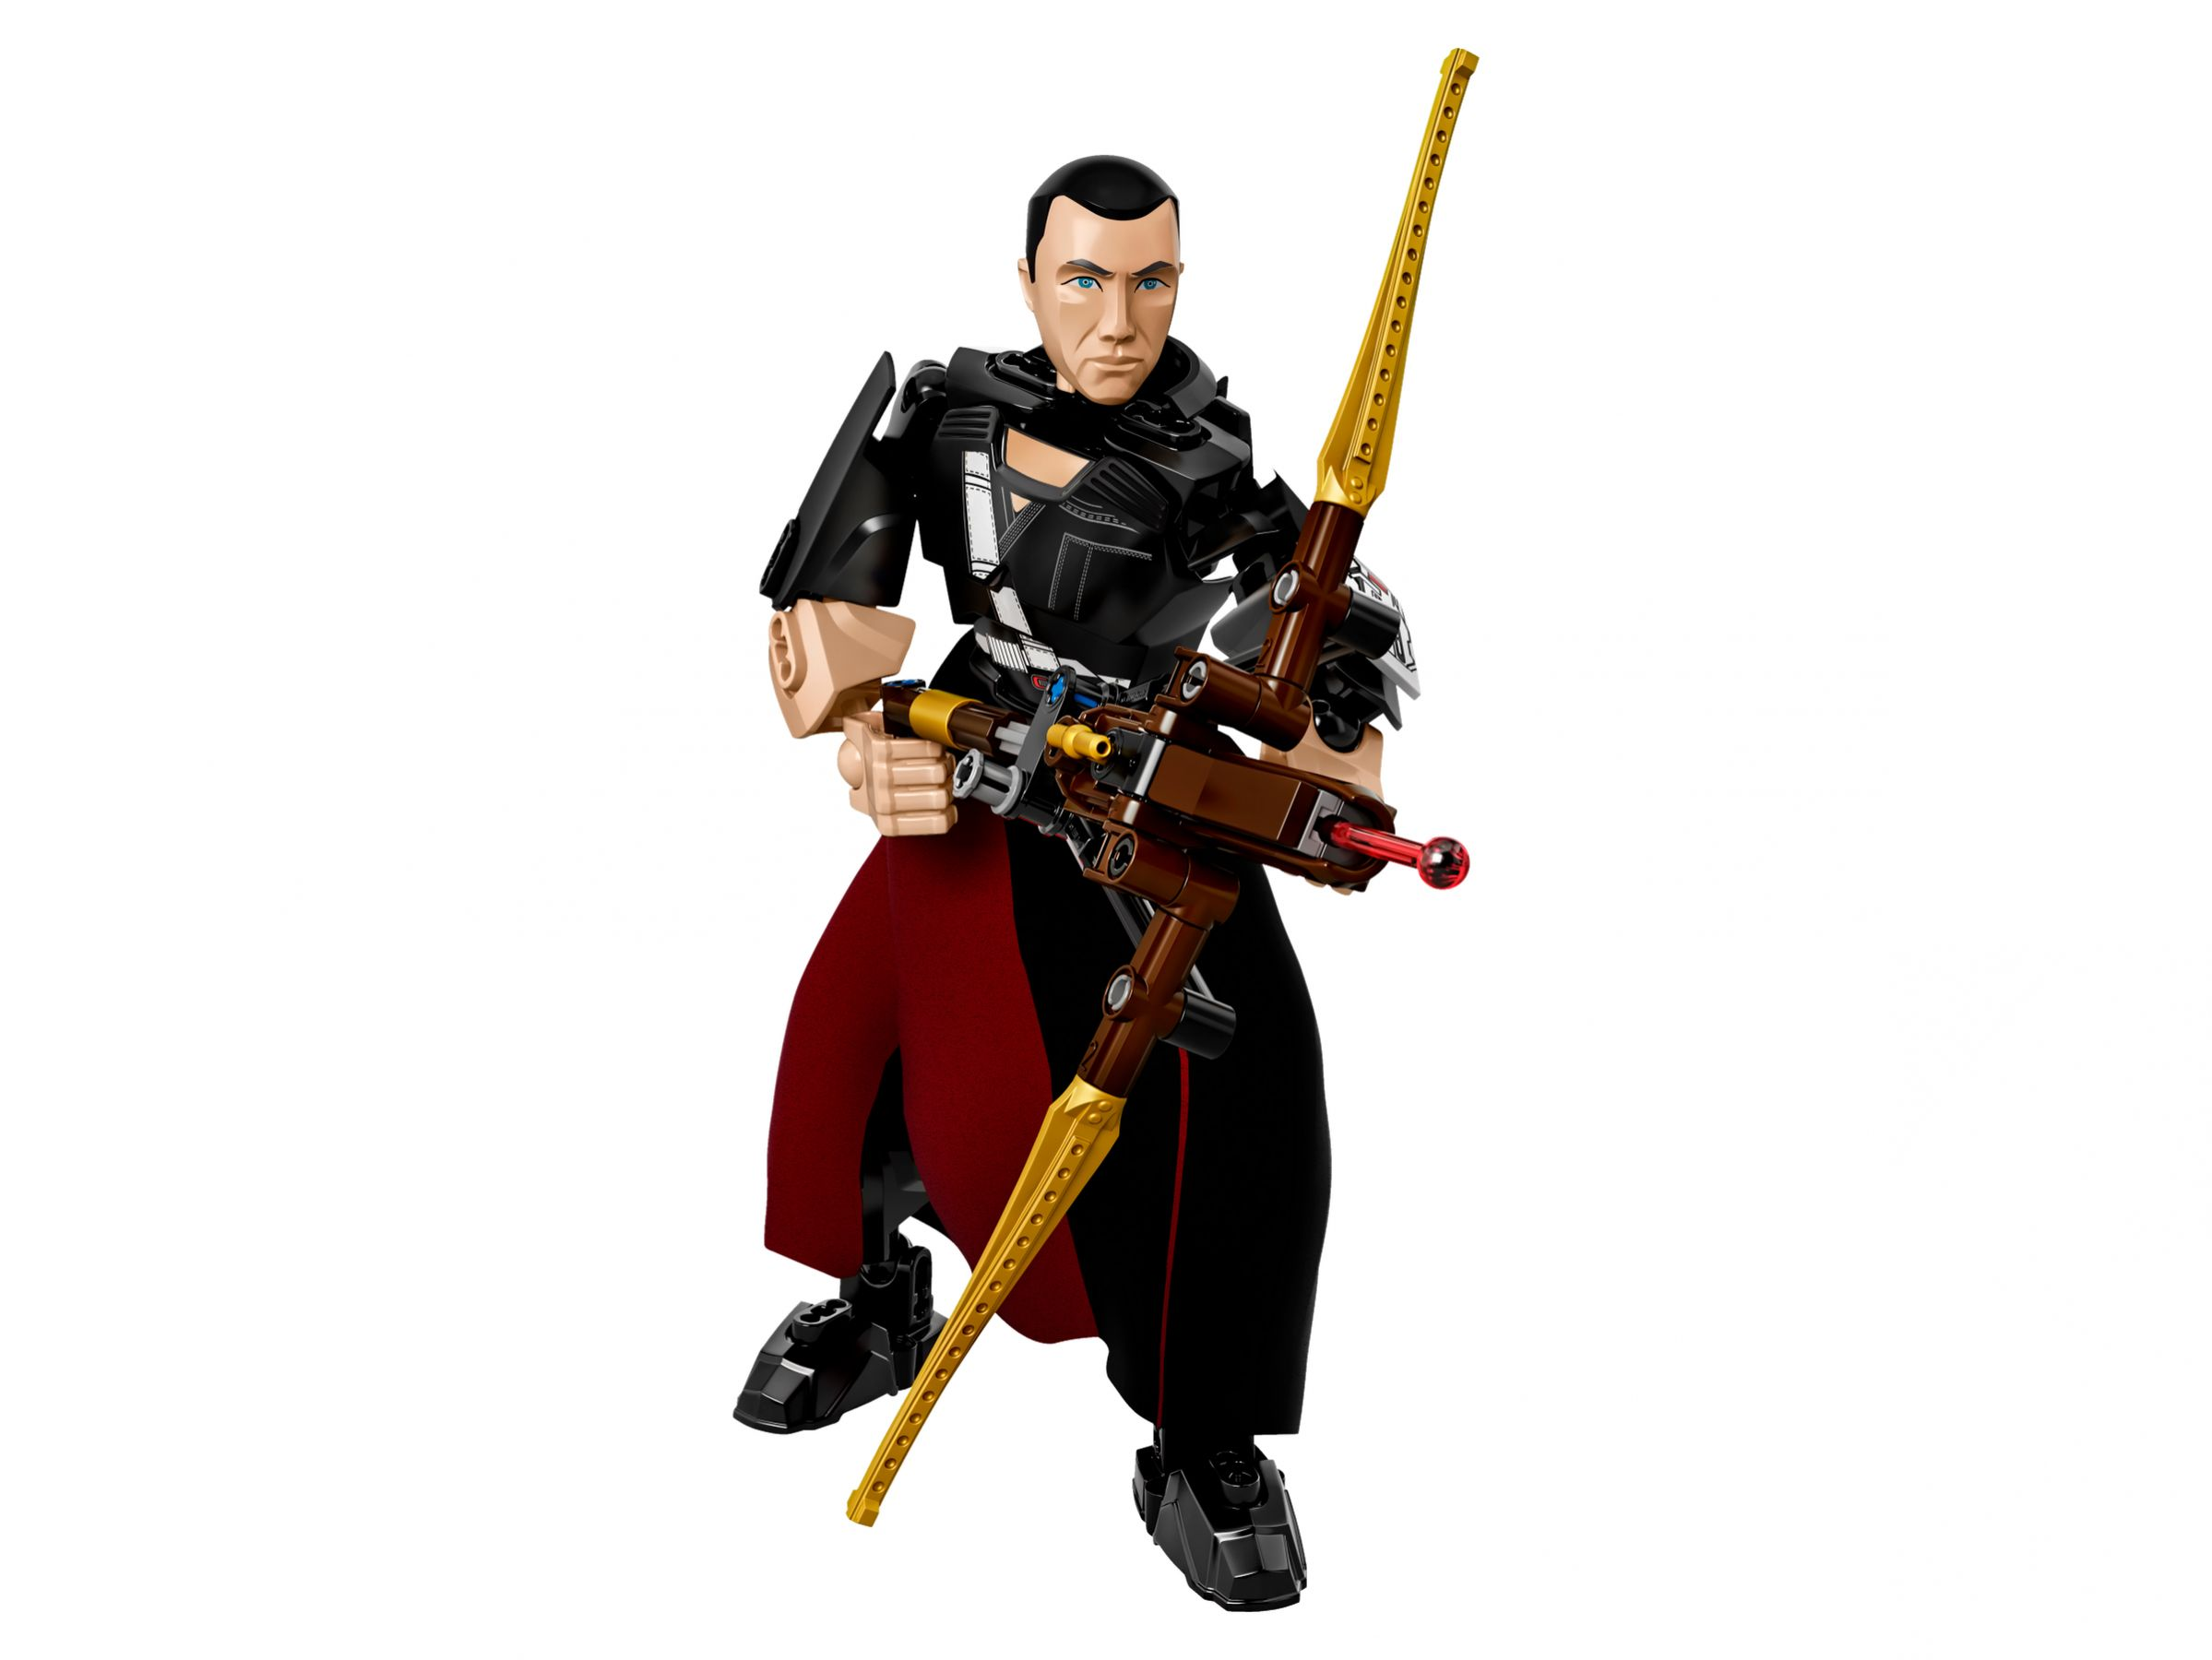 LEGO Star Wars Buildable Figures 75524 Chirrut Îmwe™ LEGO_75524_alt2.jpg